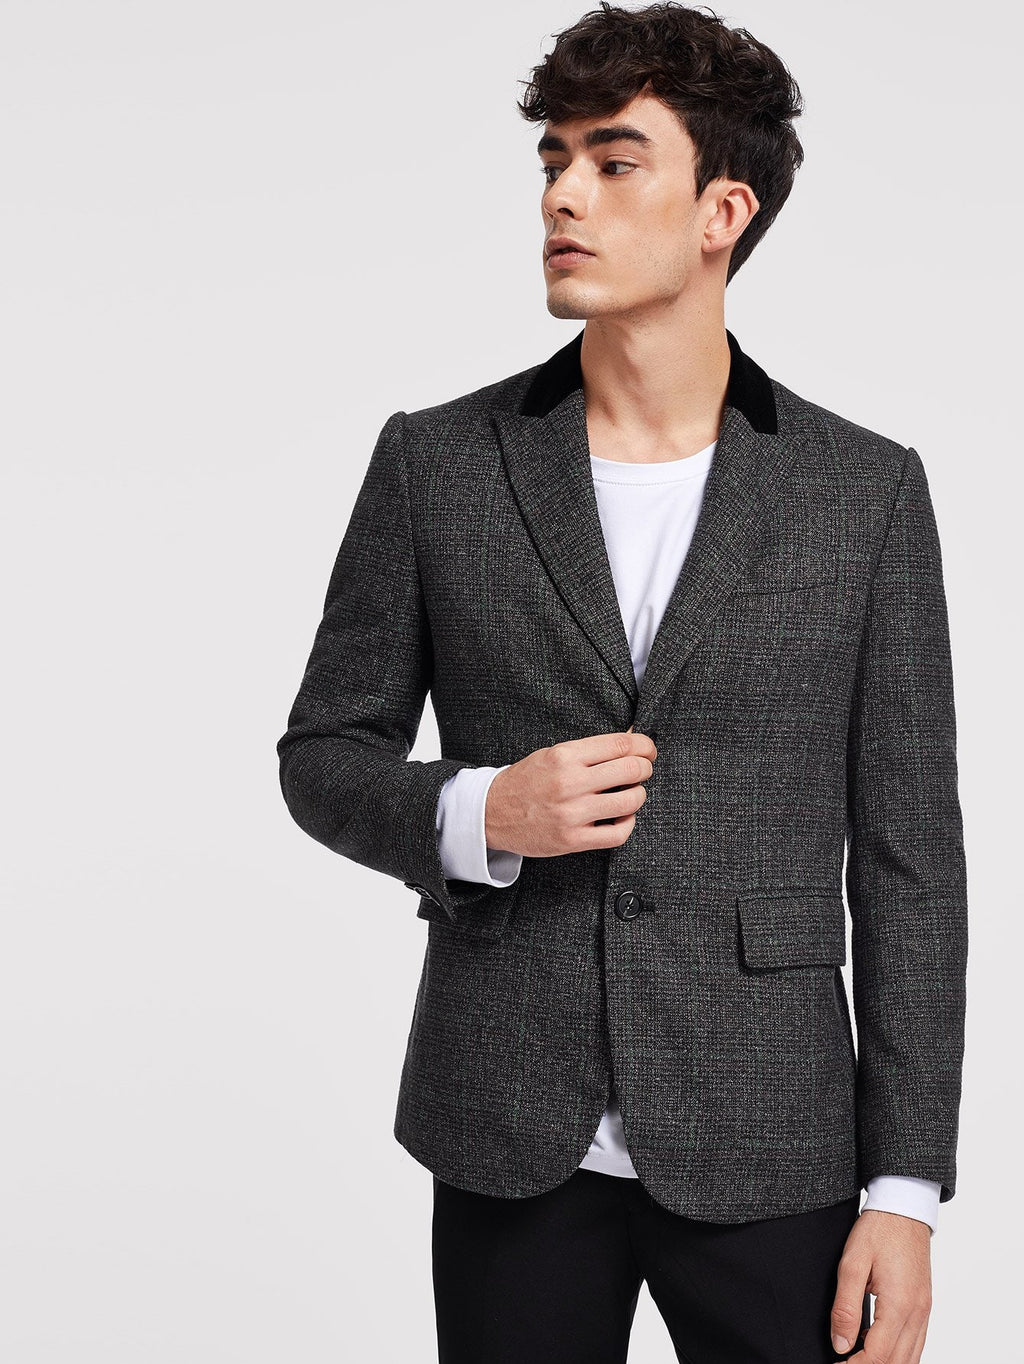 Men's Blazers - Single Breasted Plaid Print Blazer